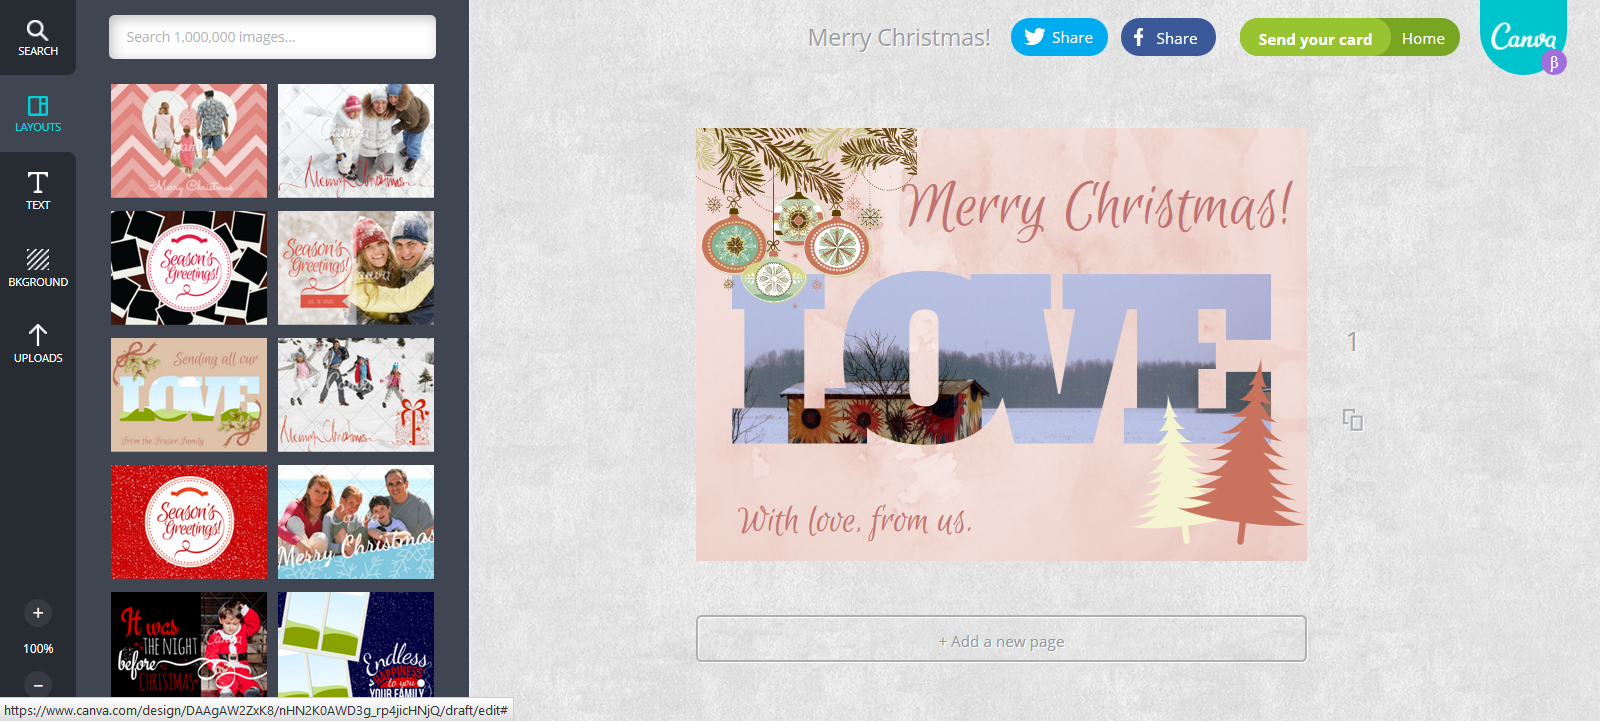 Canva Review Free Tool Brings Much Needed Simplicity To Design Process